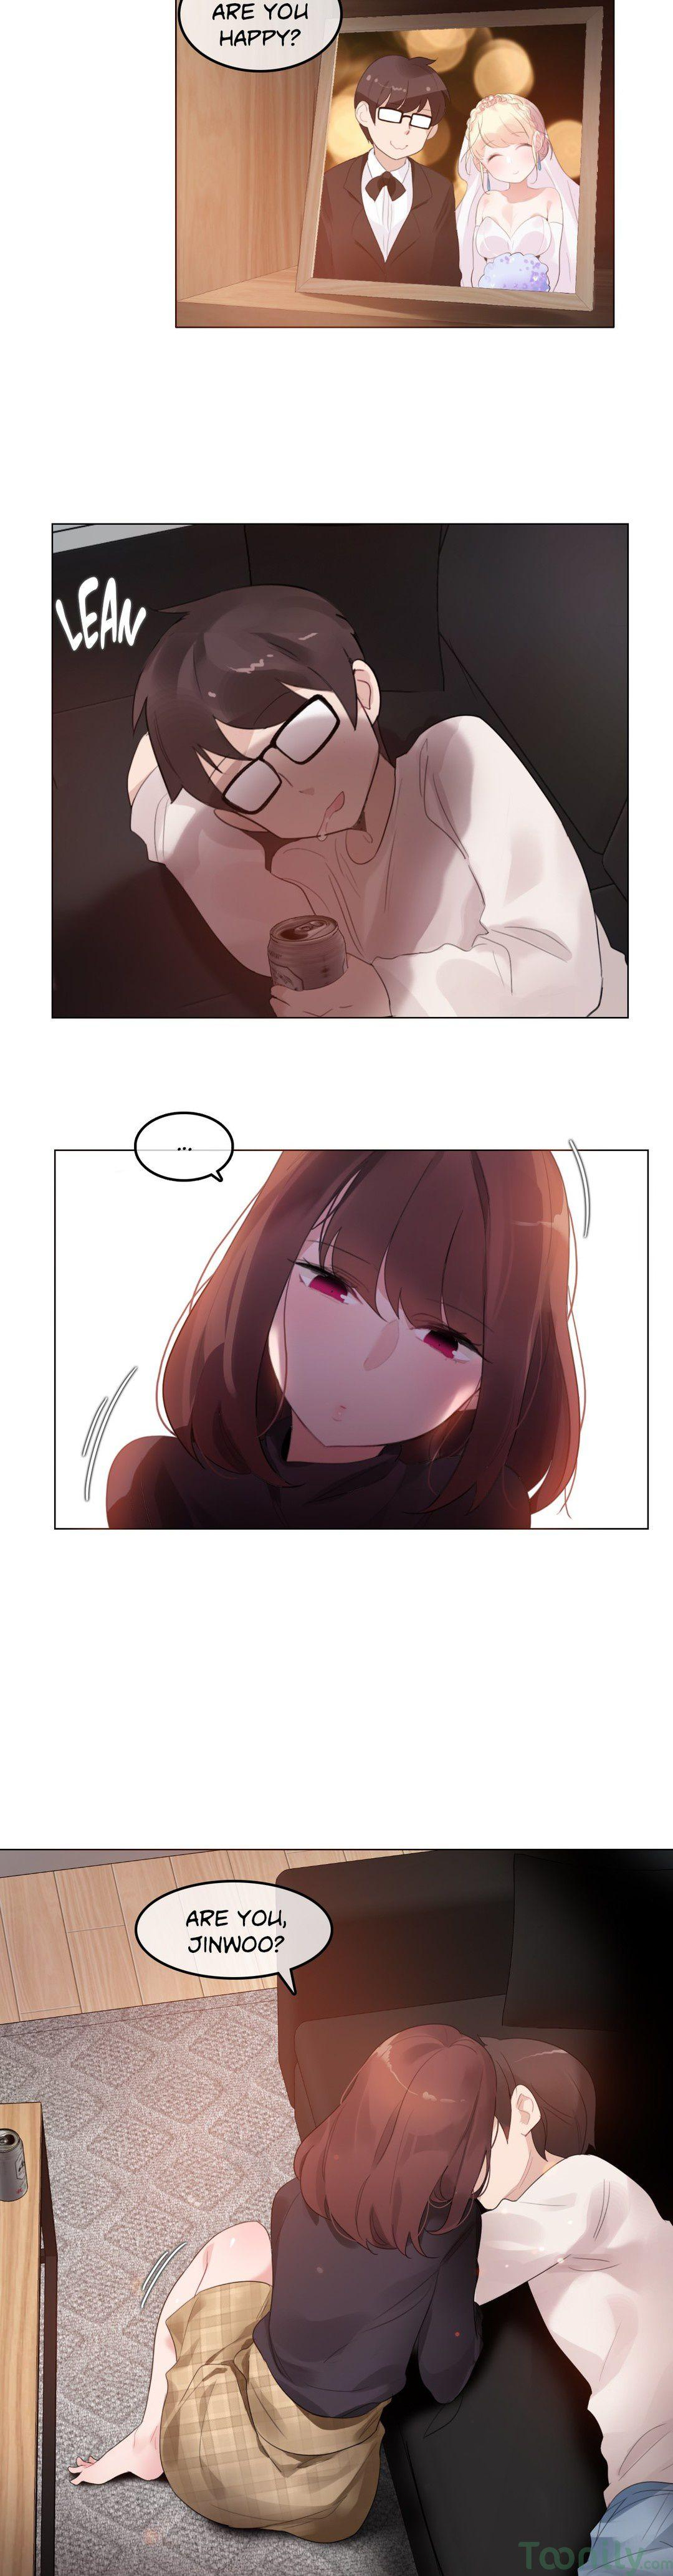 A Pervert's Daily Life Ch. 35-71 548